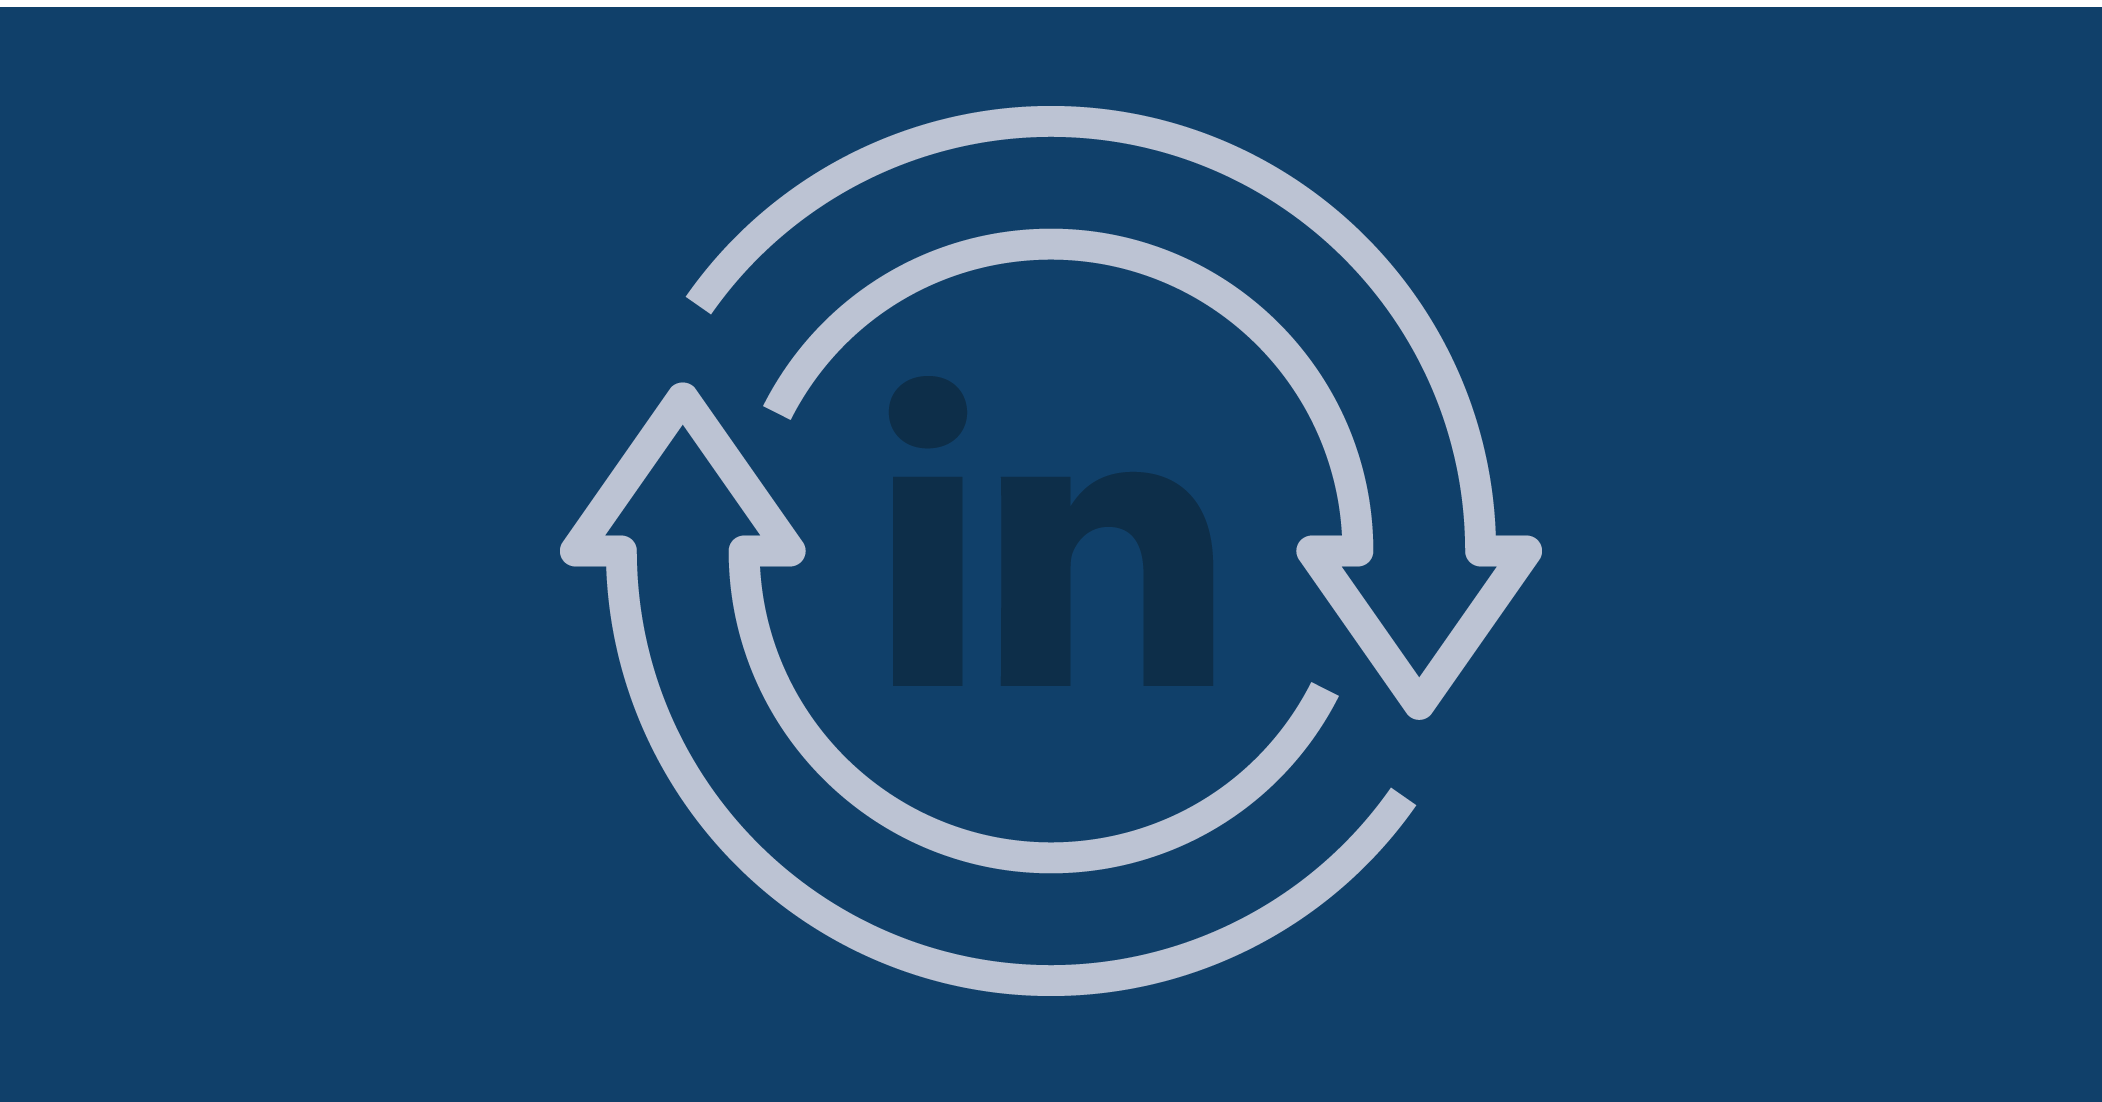 11. Update your LinkedIn profile